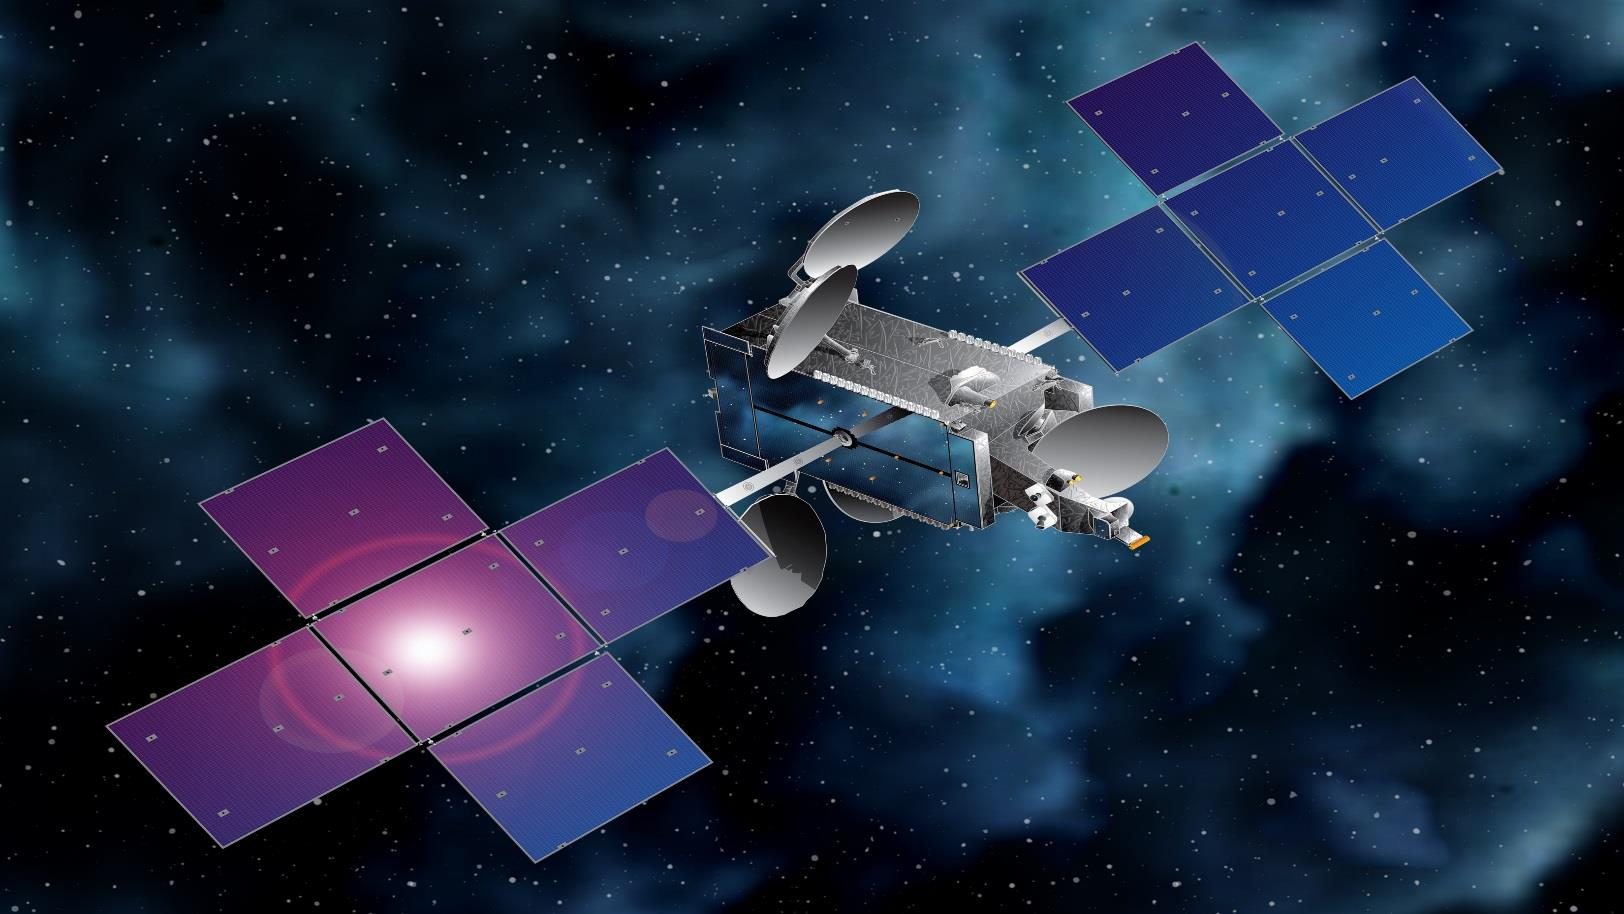 Artist's concept of the Eutelsat 65 West A satellite. Credit: Space Systems/Loral